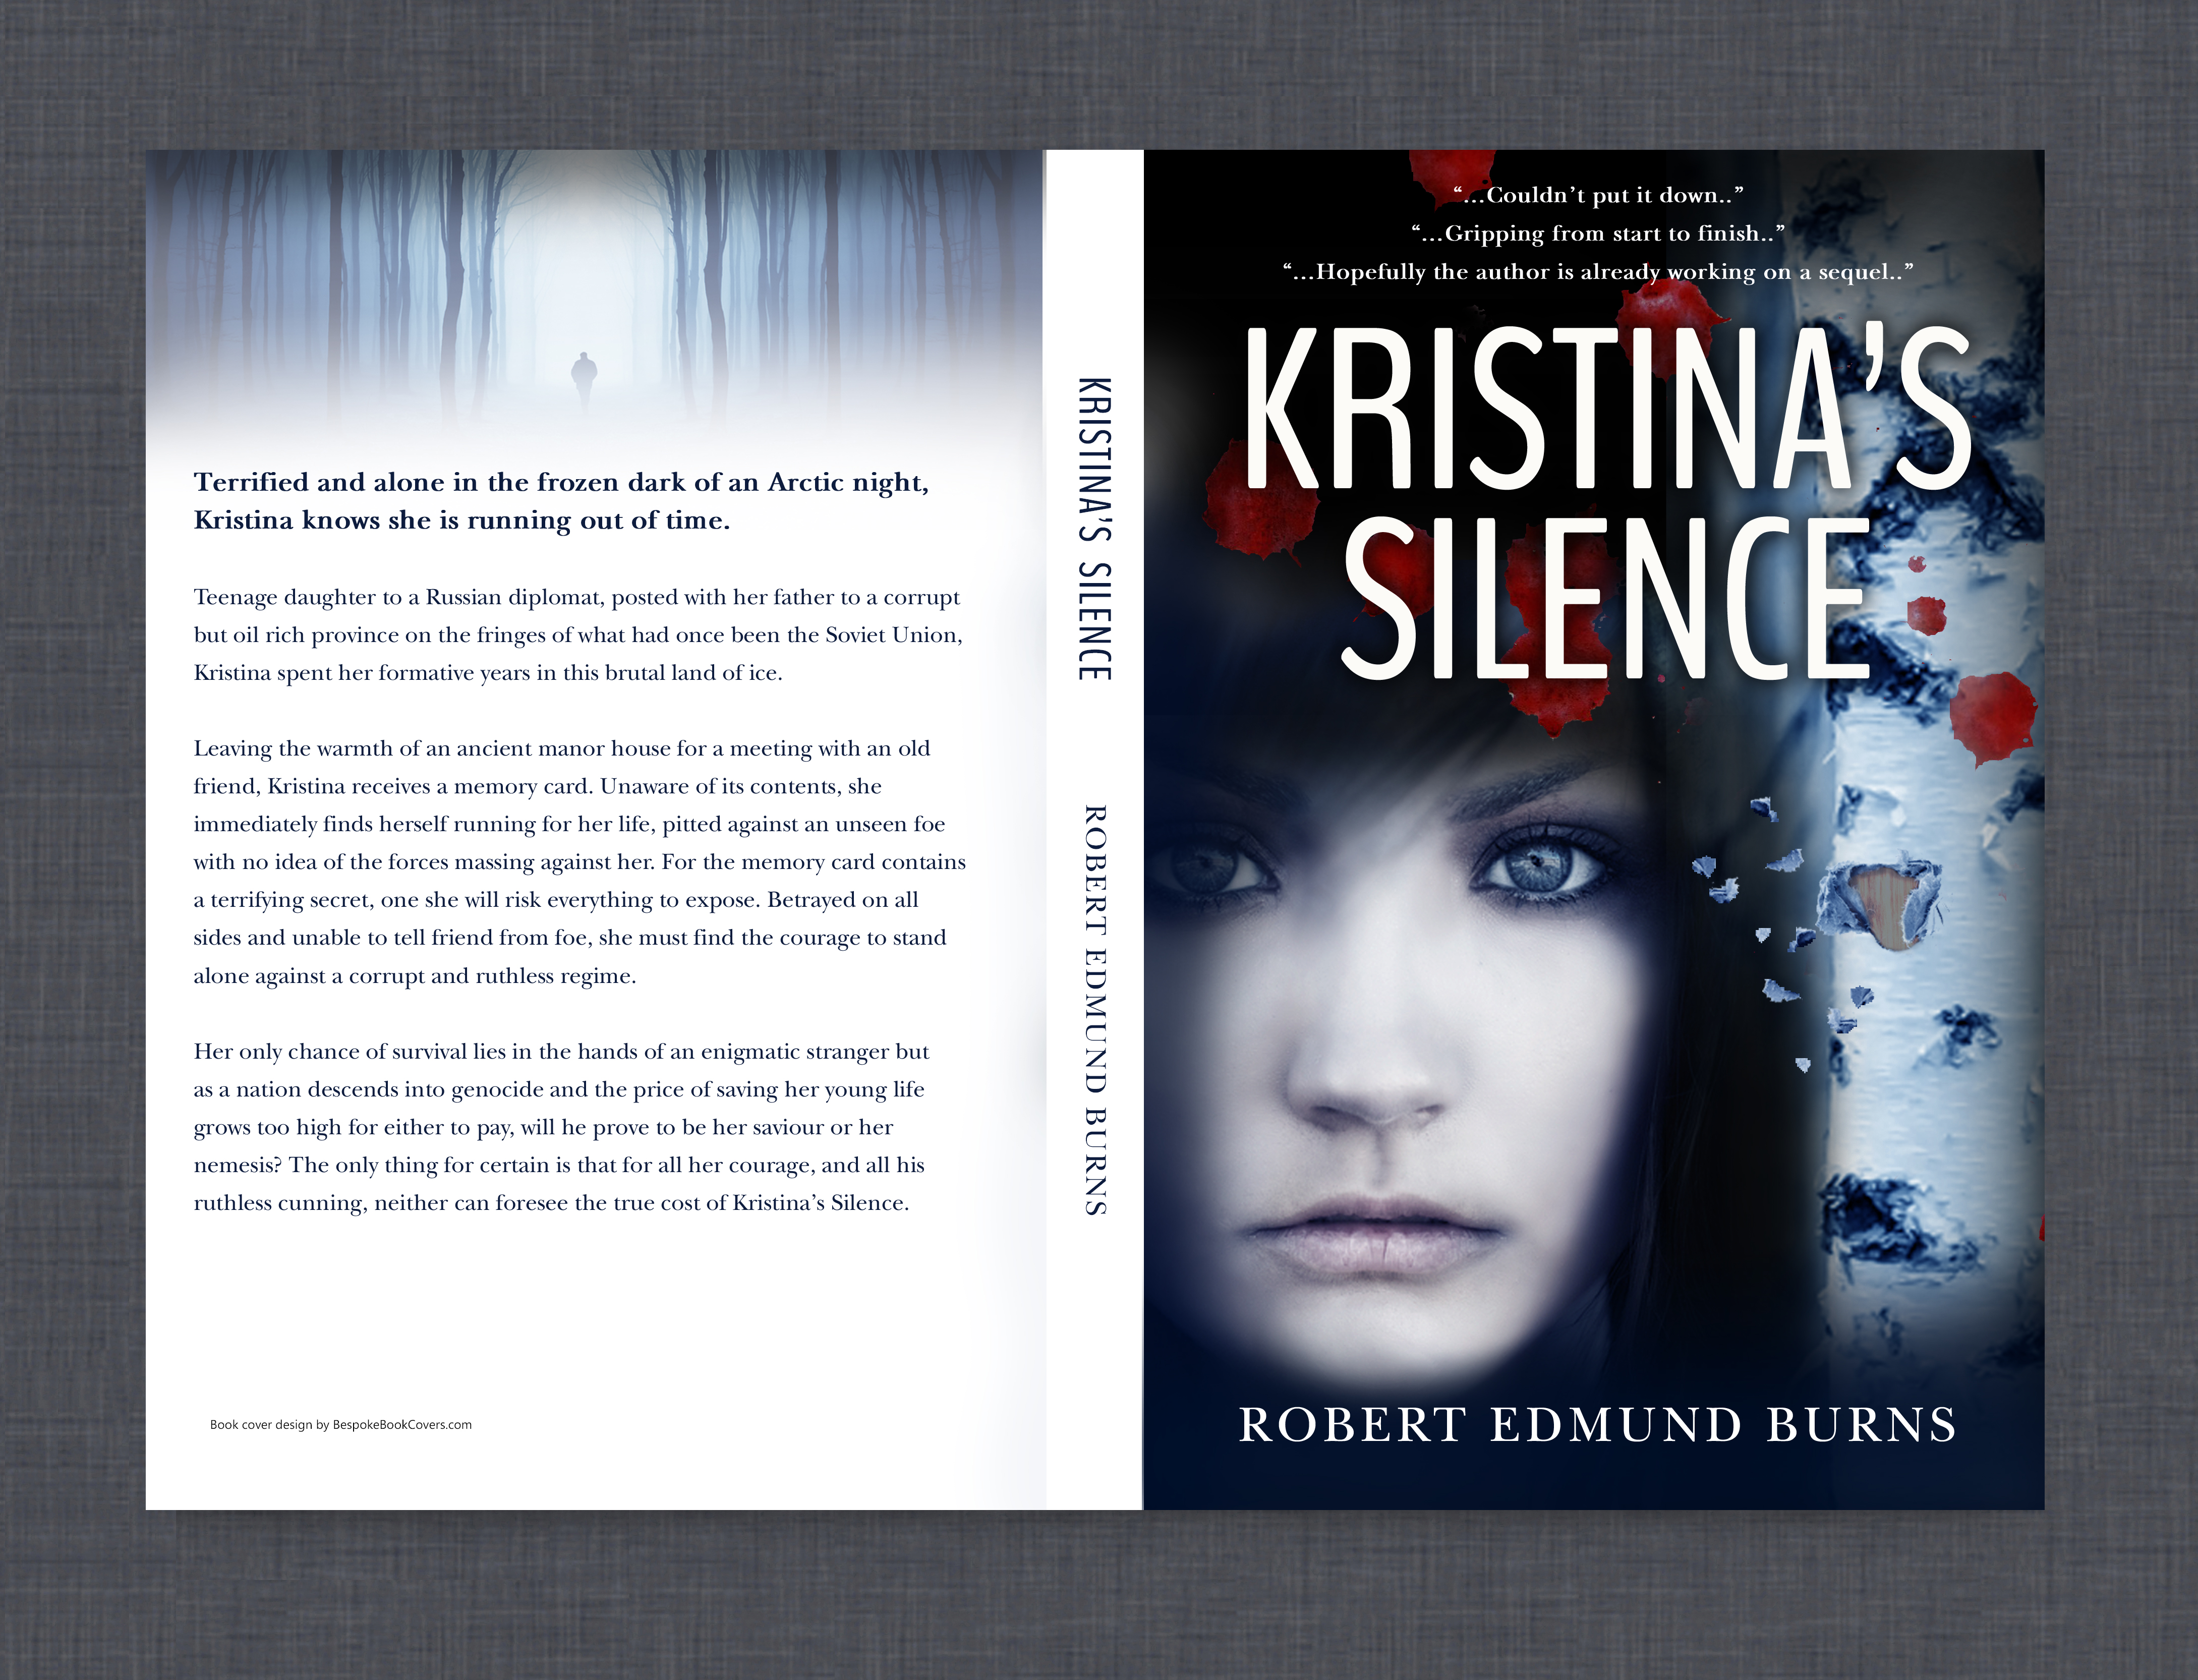 kristina's silence book cover